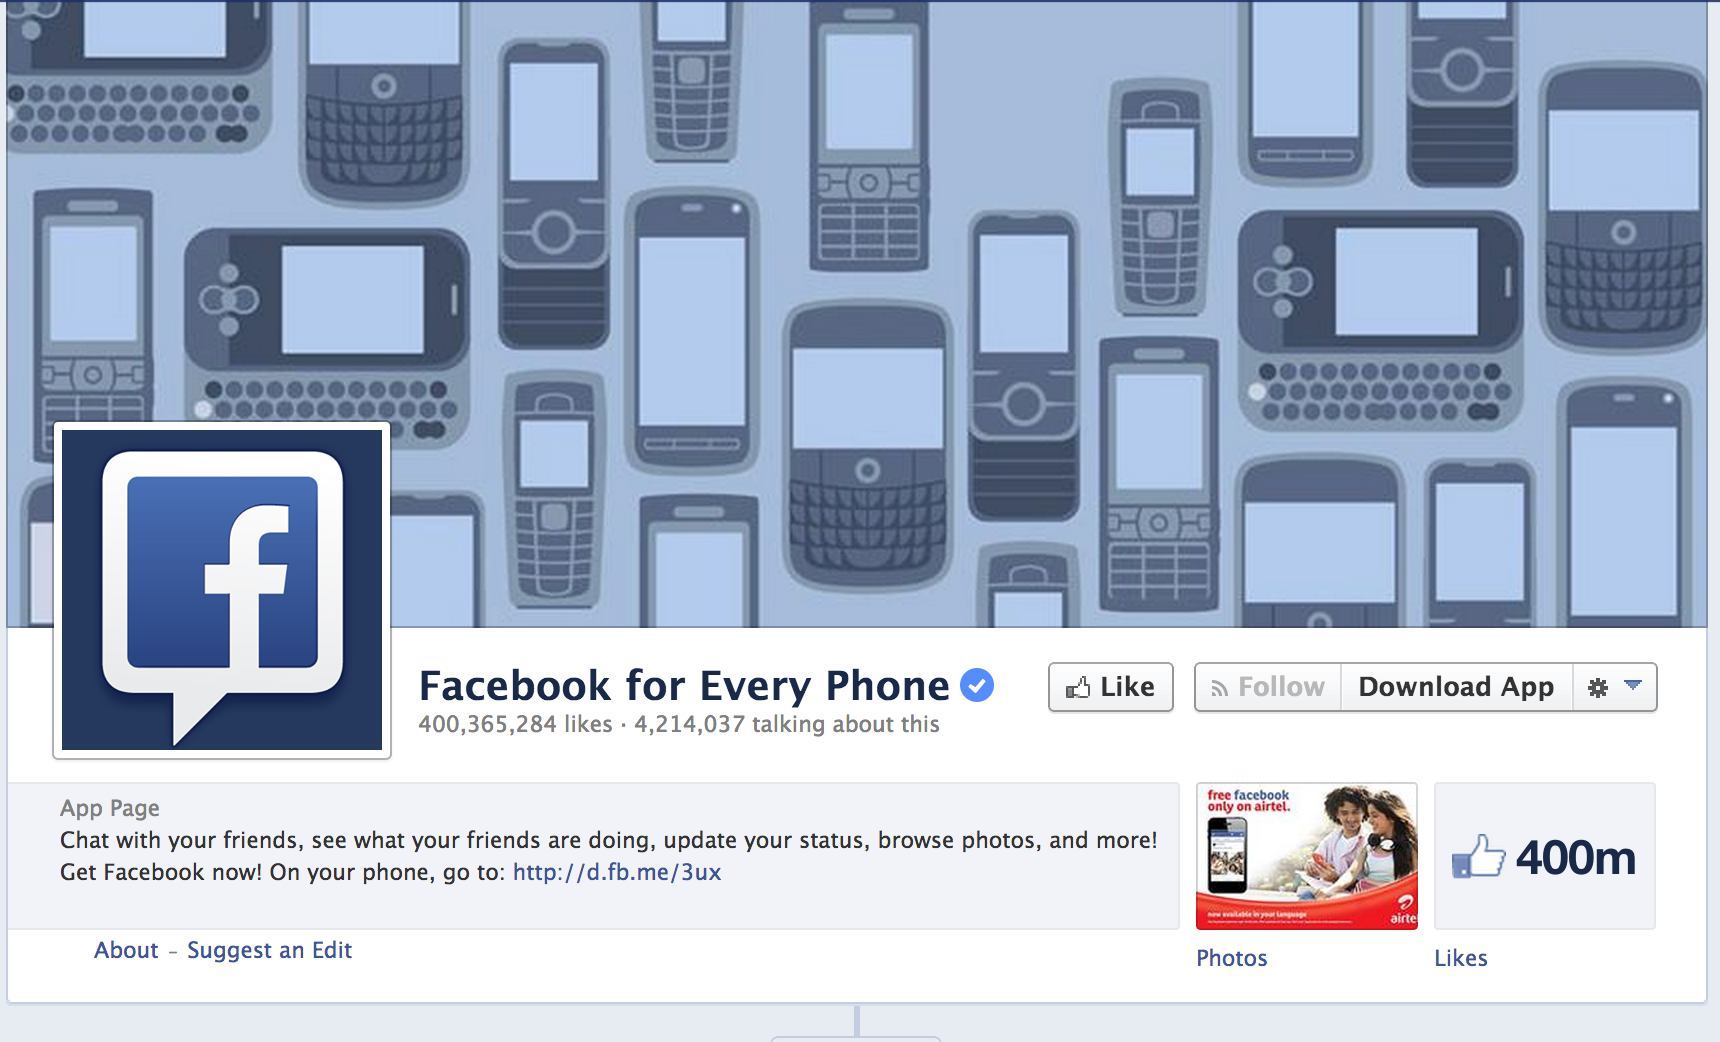 Facebook for Every Phone on Facebook